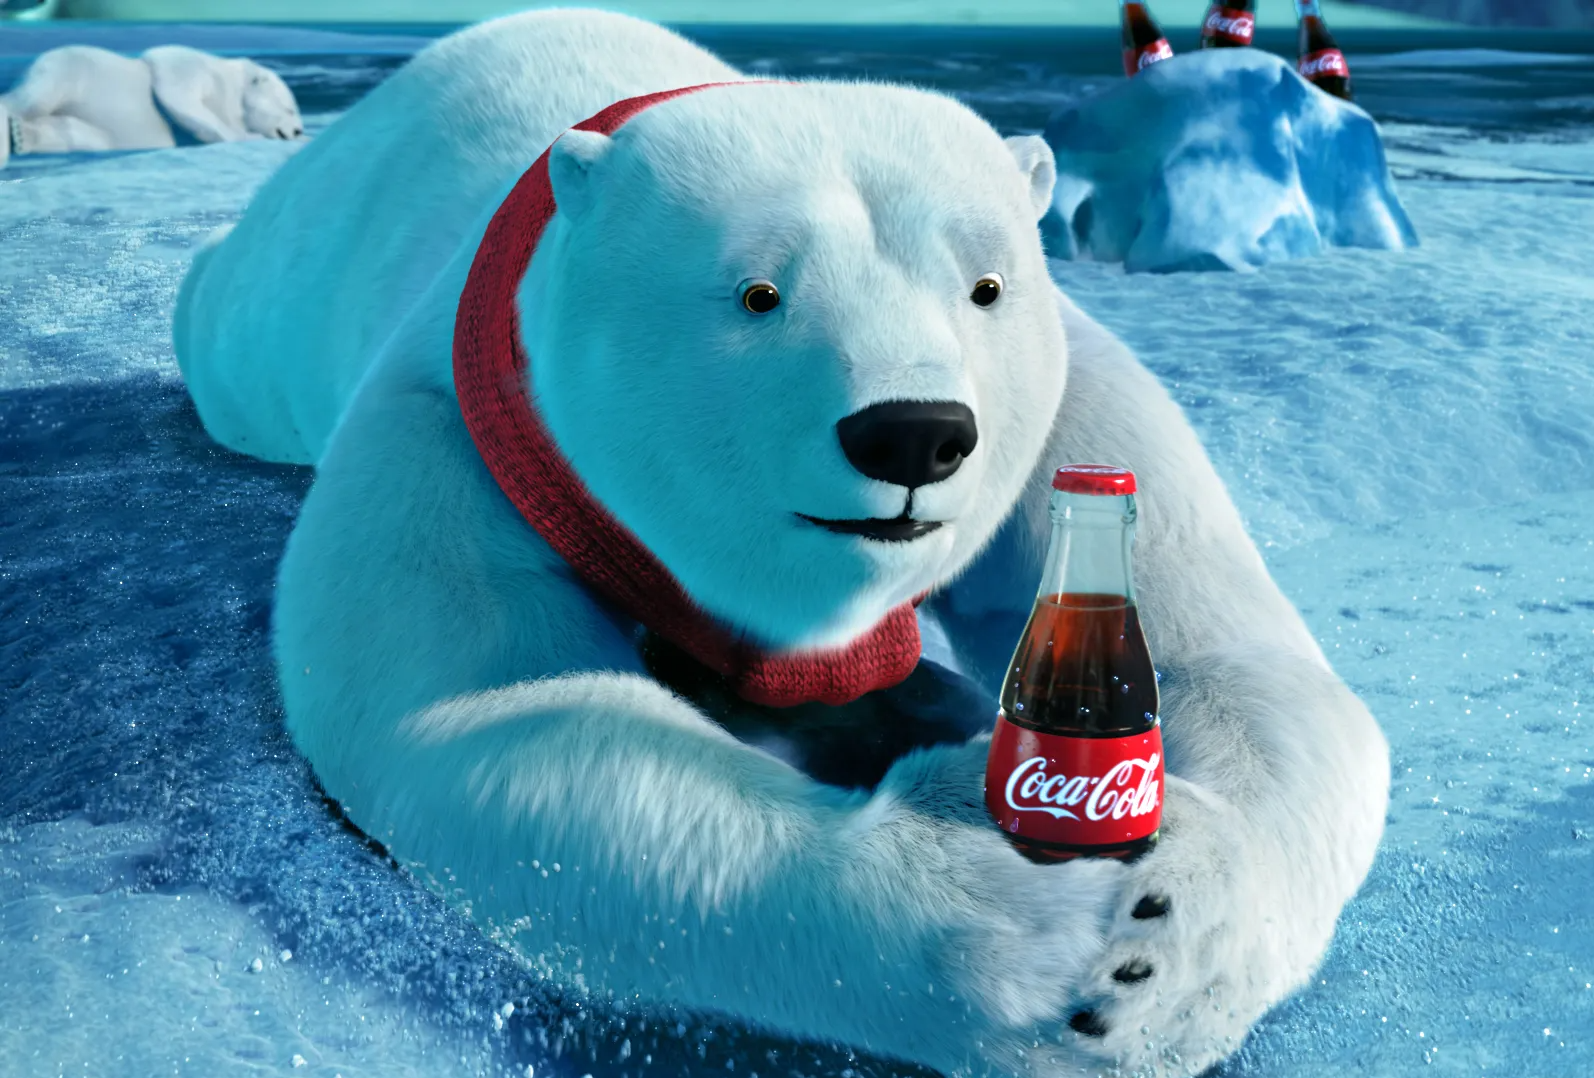 A polar bear on an iceberg wears a red scarf and holds a classic bottle of Coca-Cola.